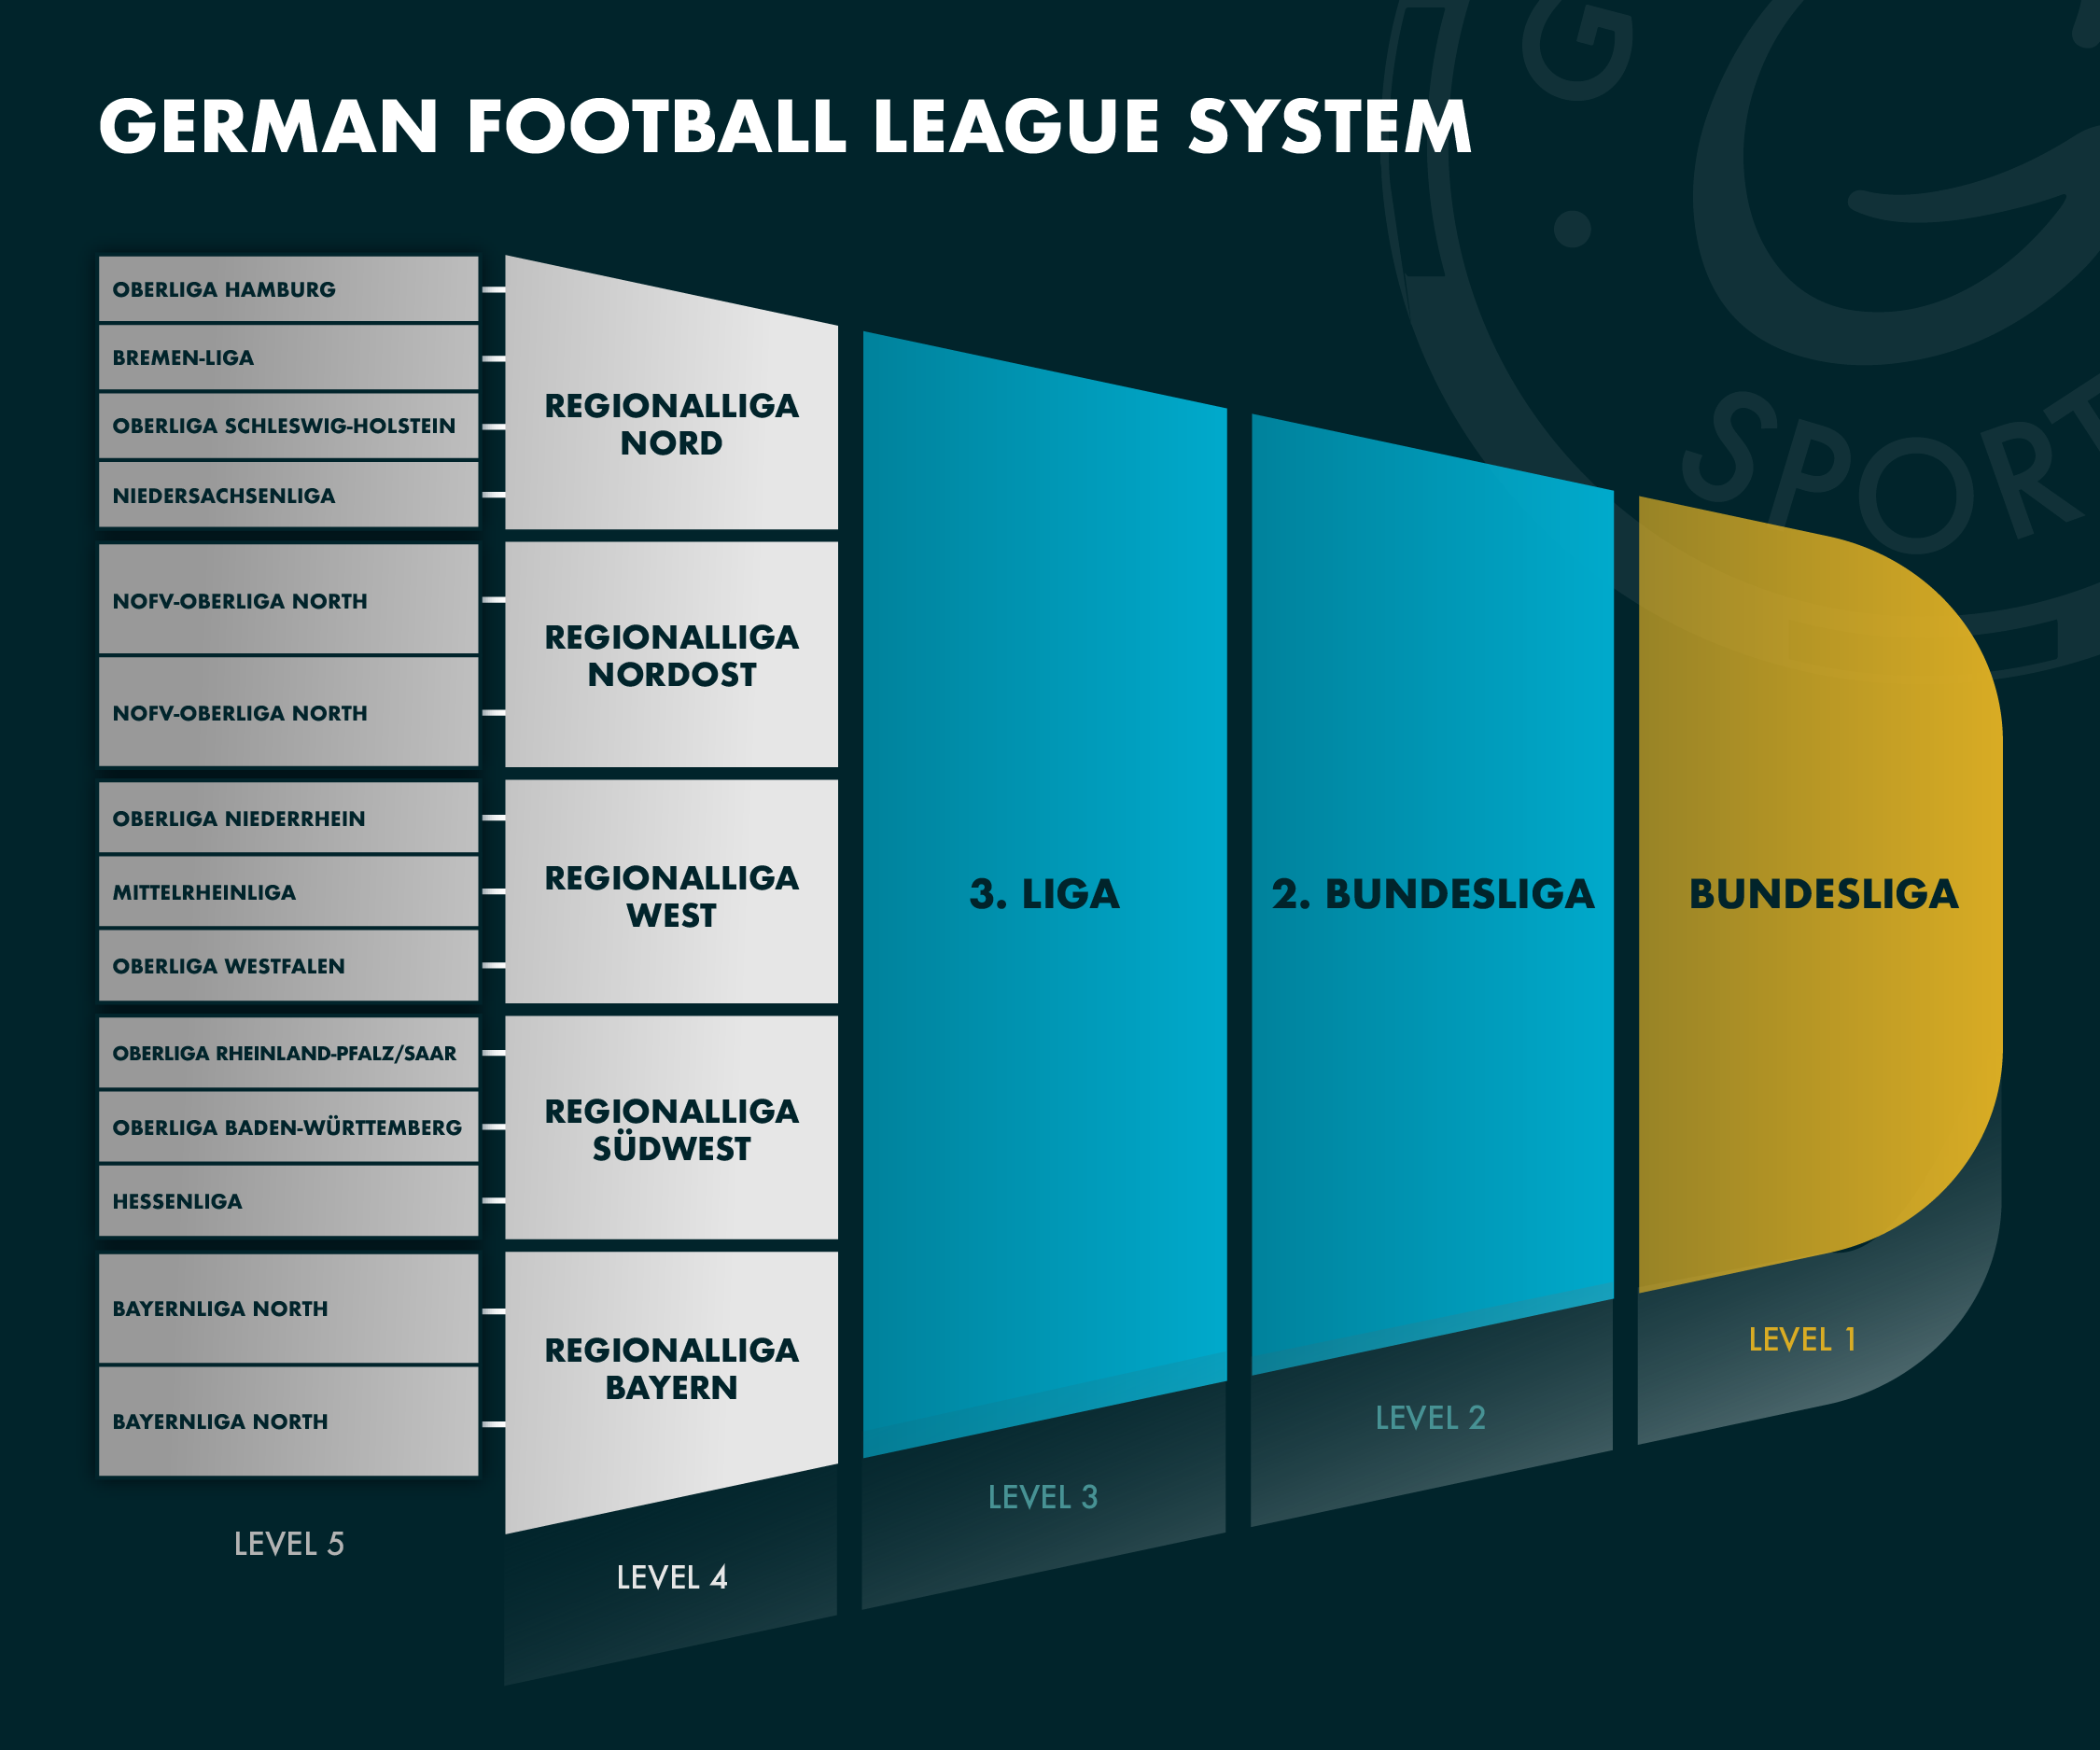 How does the German football league system work?